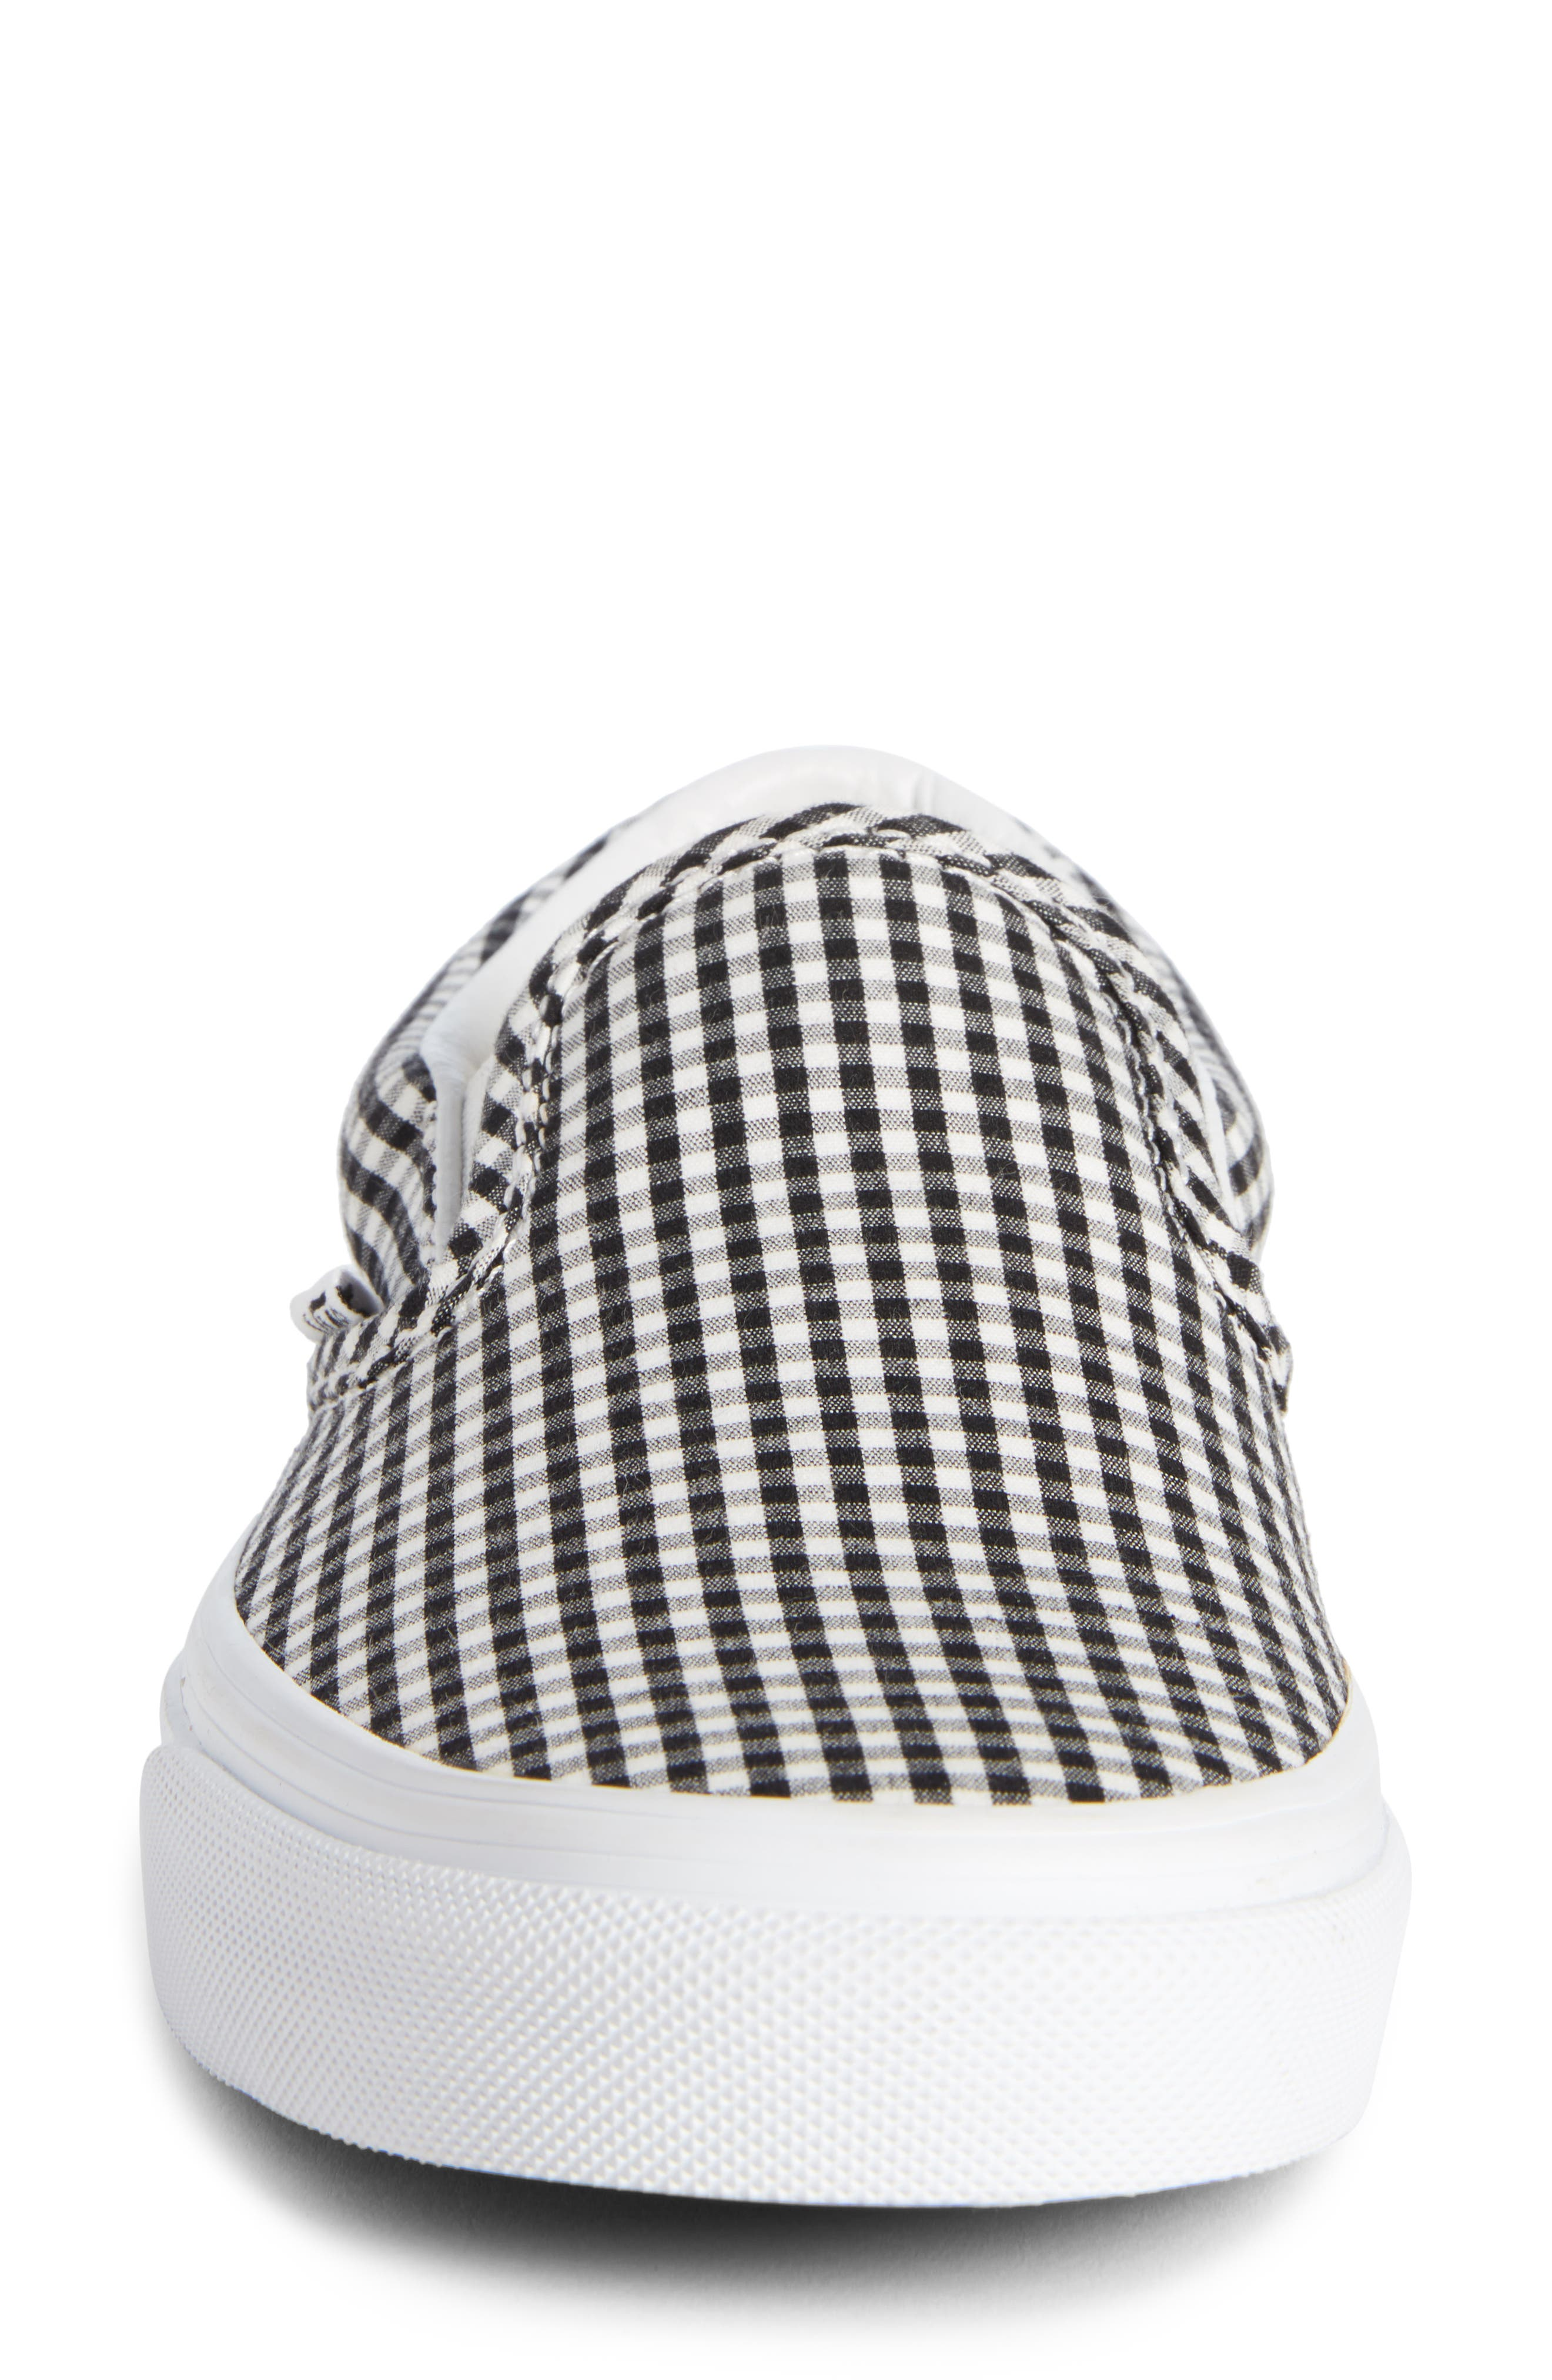 Classic Slip-On Sneaker,                             Alternate thumbnail 4, color,                             Black/ True White Gingham